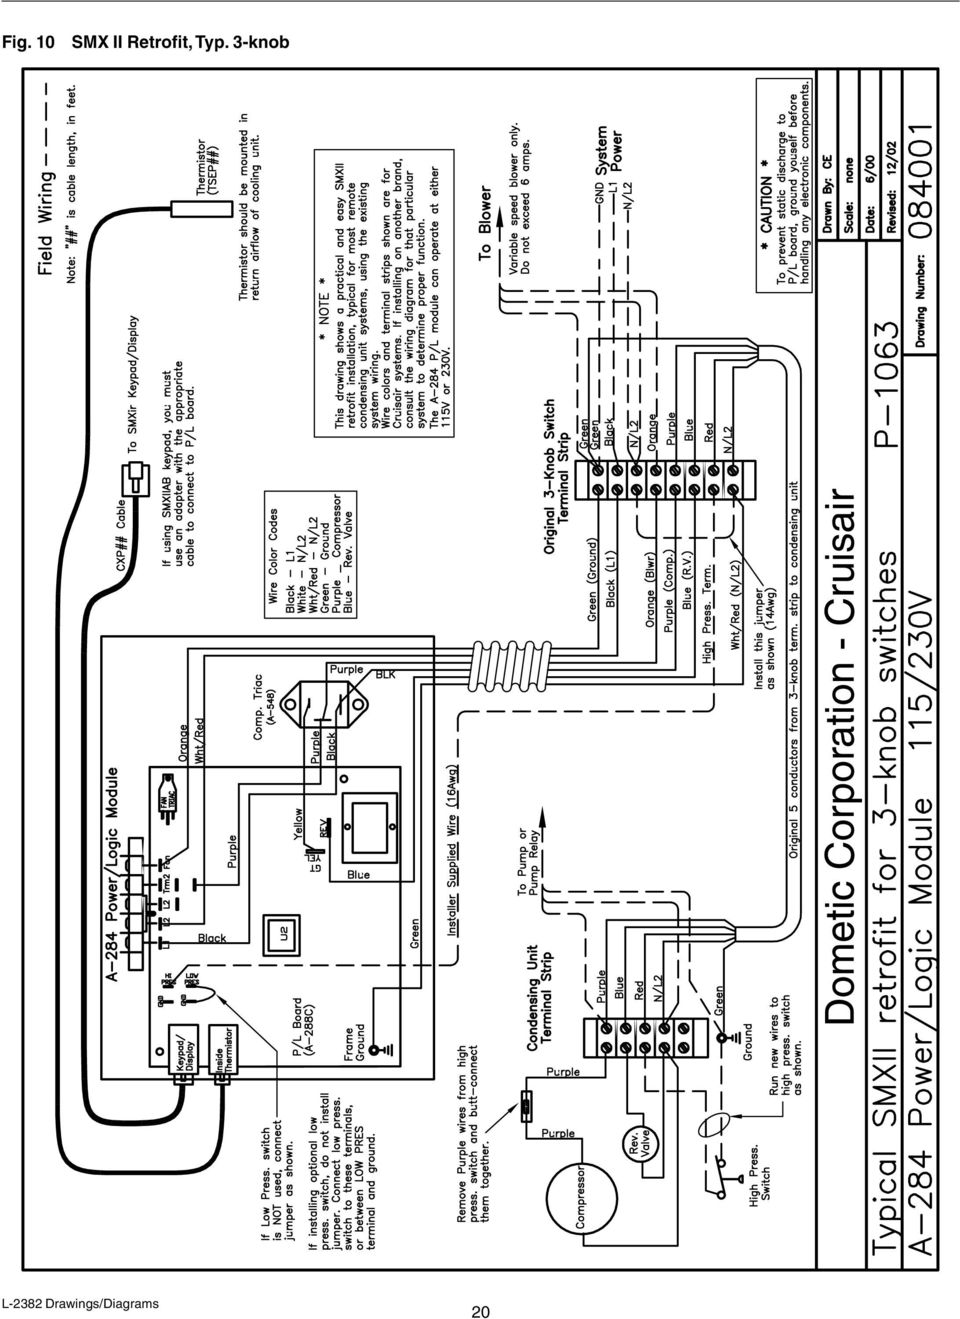 dehumidifier wiring schematic ford 3000 tractor key switch